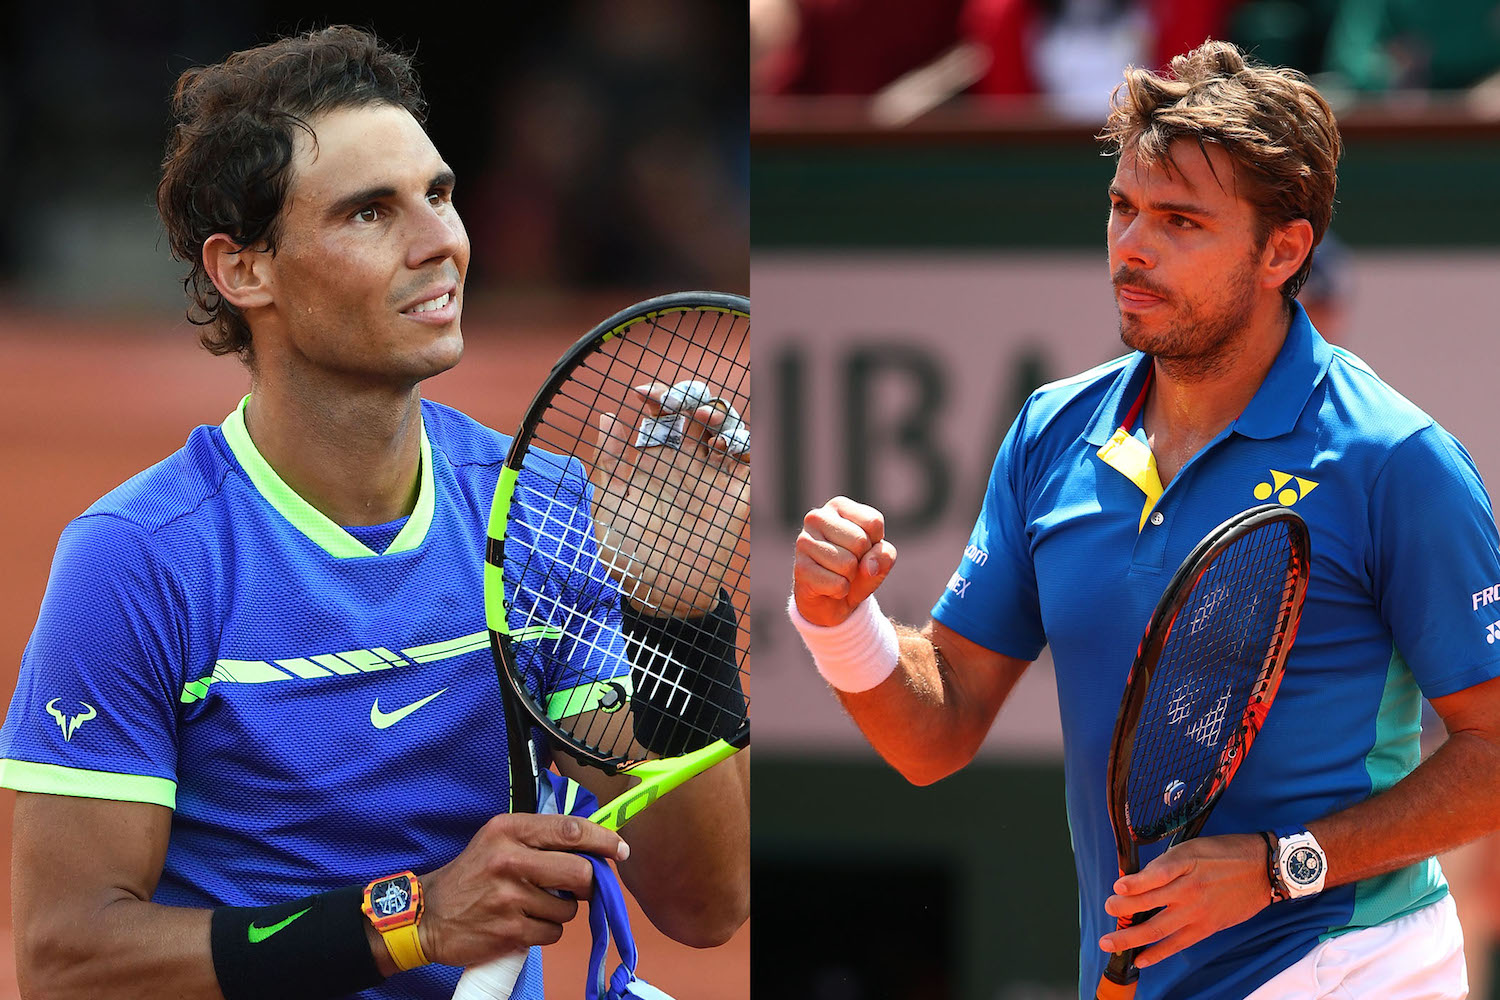 French Open Roland-Garros 2017 Final - Nadal vs Wawrinka - Richard Mille vs Audemars Piguet